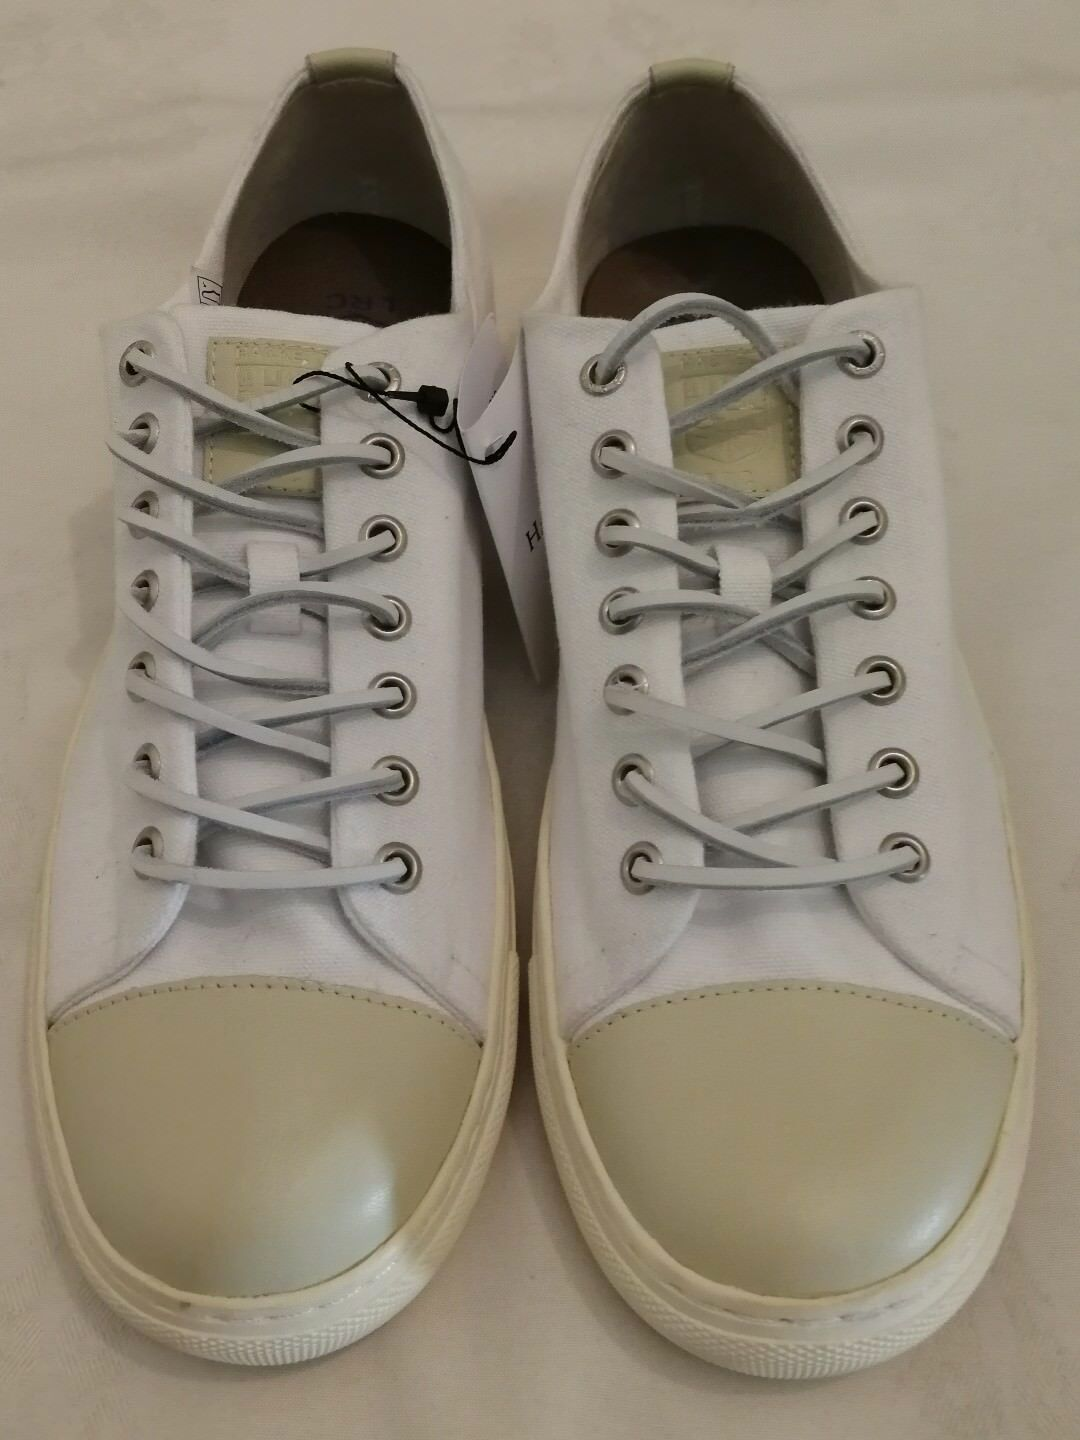 HACKETT LONDON LRC Fashion Toe Cap Lace-up Canvas Sneakers Weiß Größe uk 9 eu 43